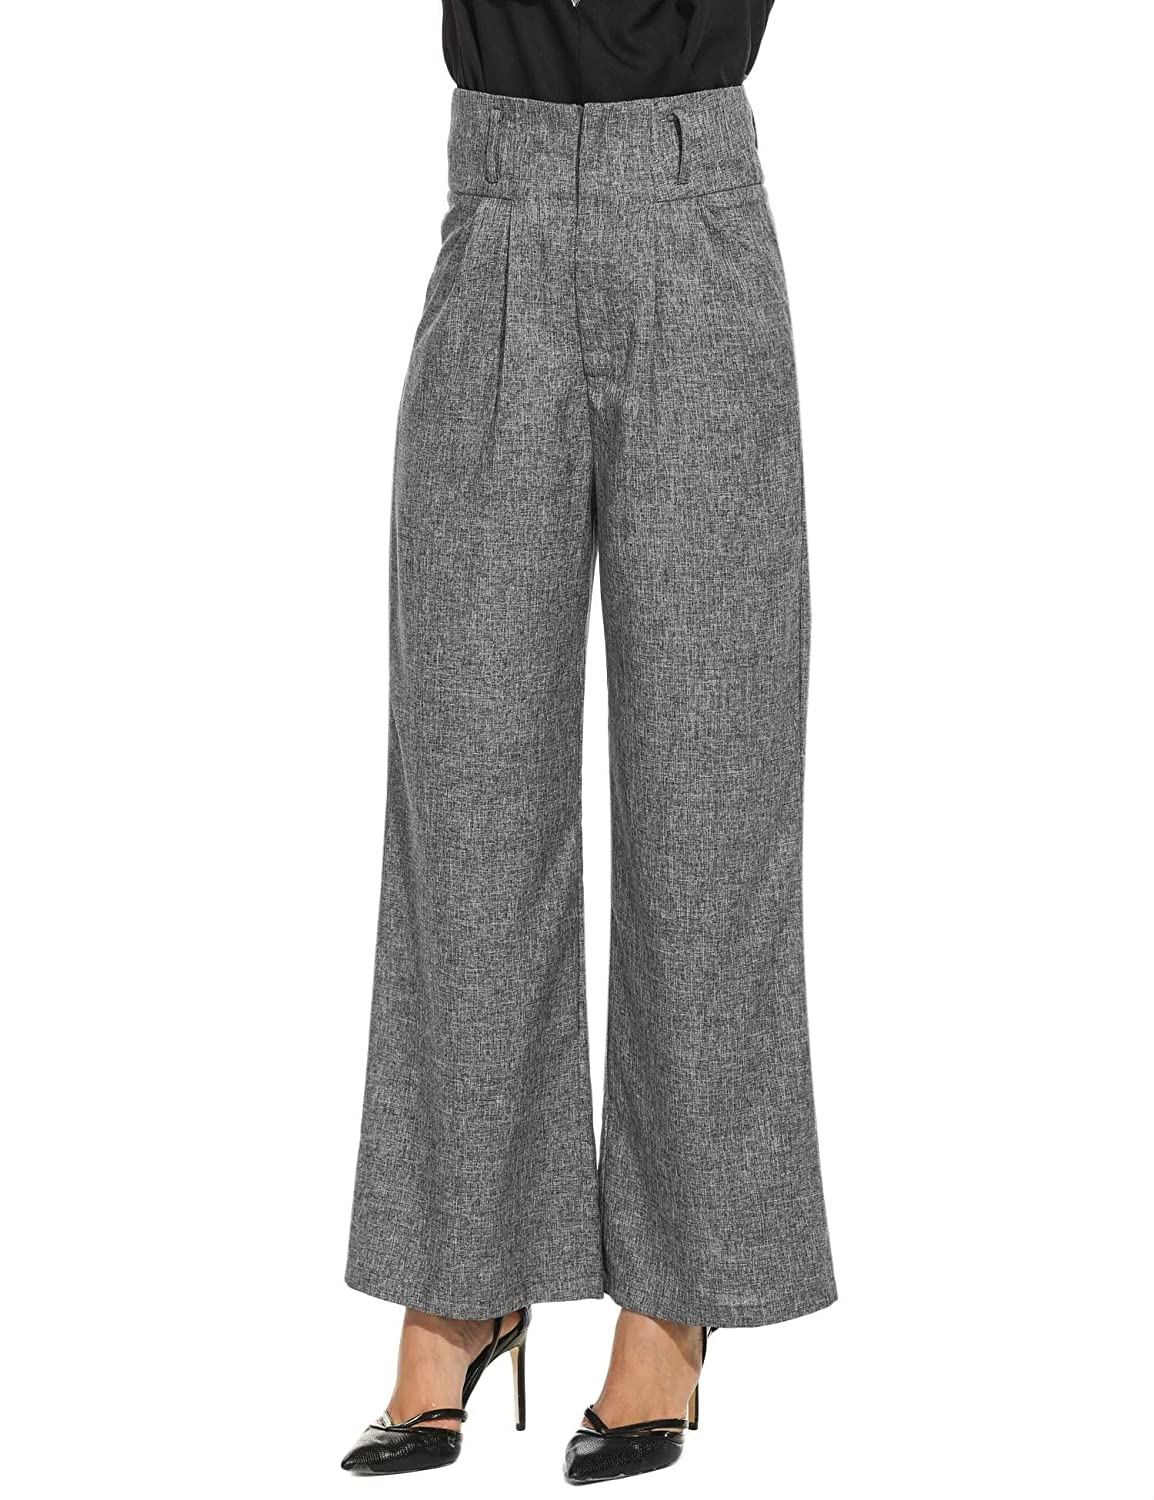 Did Women Wear Pants in the 1920s? Yes! sort of… Zeagoo Womens Casual Superline Wide Flare Leg High Waist Zipper Solid Long Pants $27.99 AT vintagedancer.com